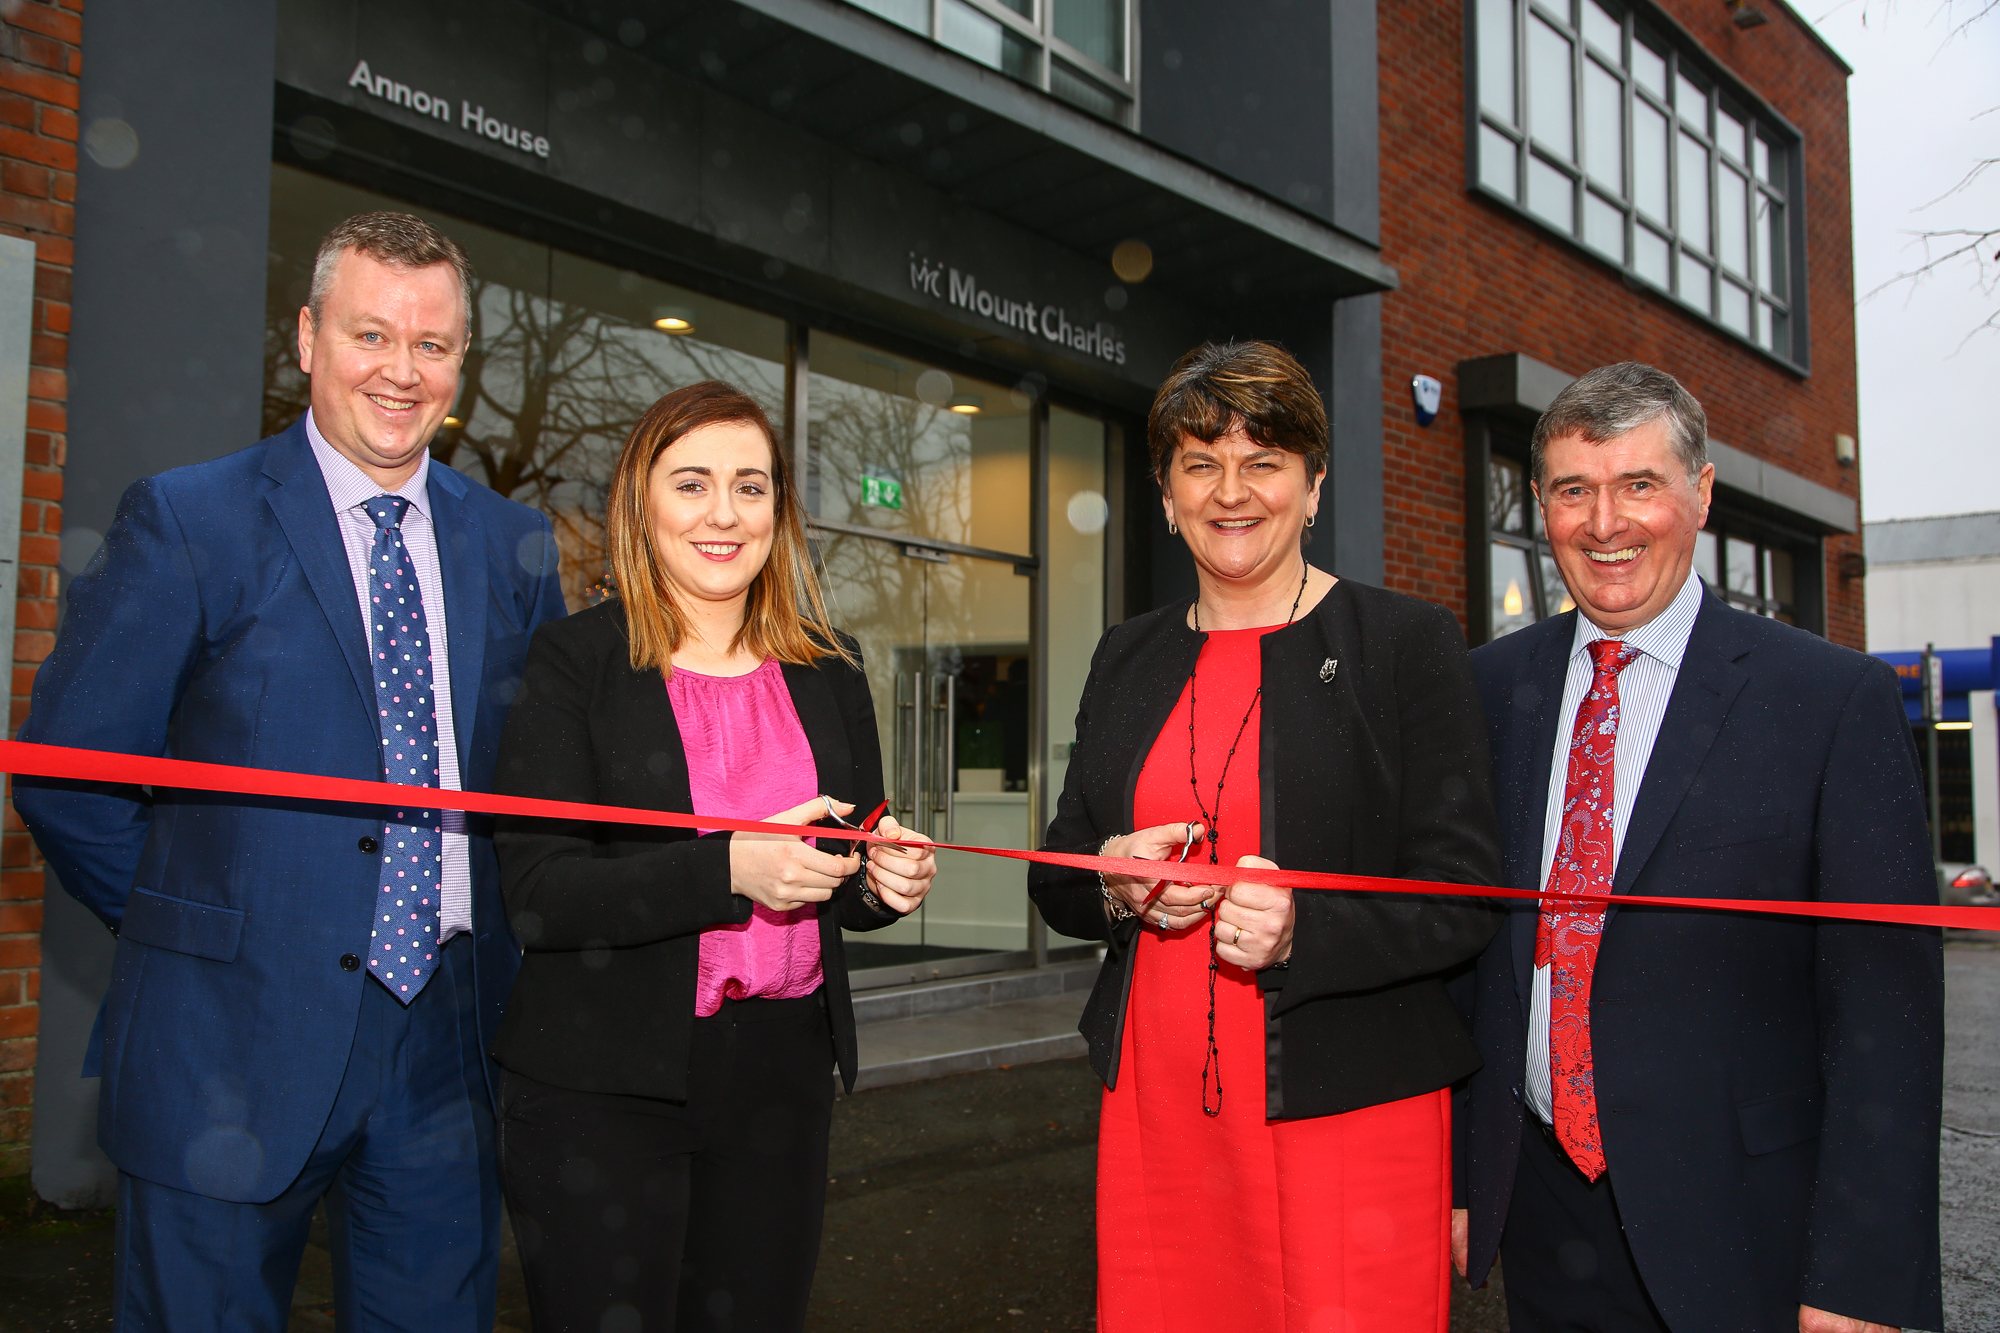 Opening of £1.6m HQ signals new era for Mount Charles